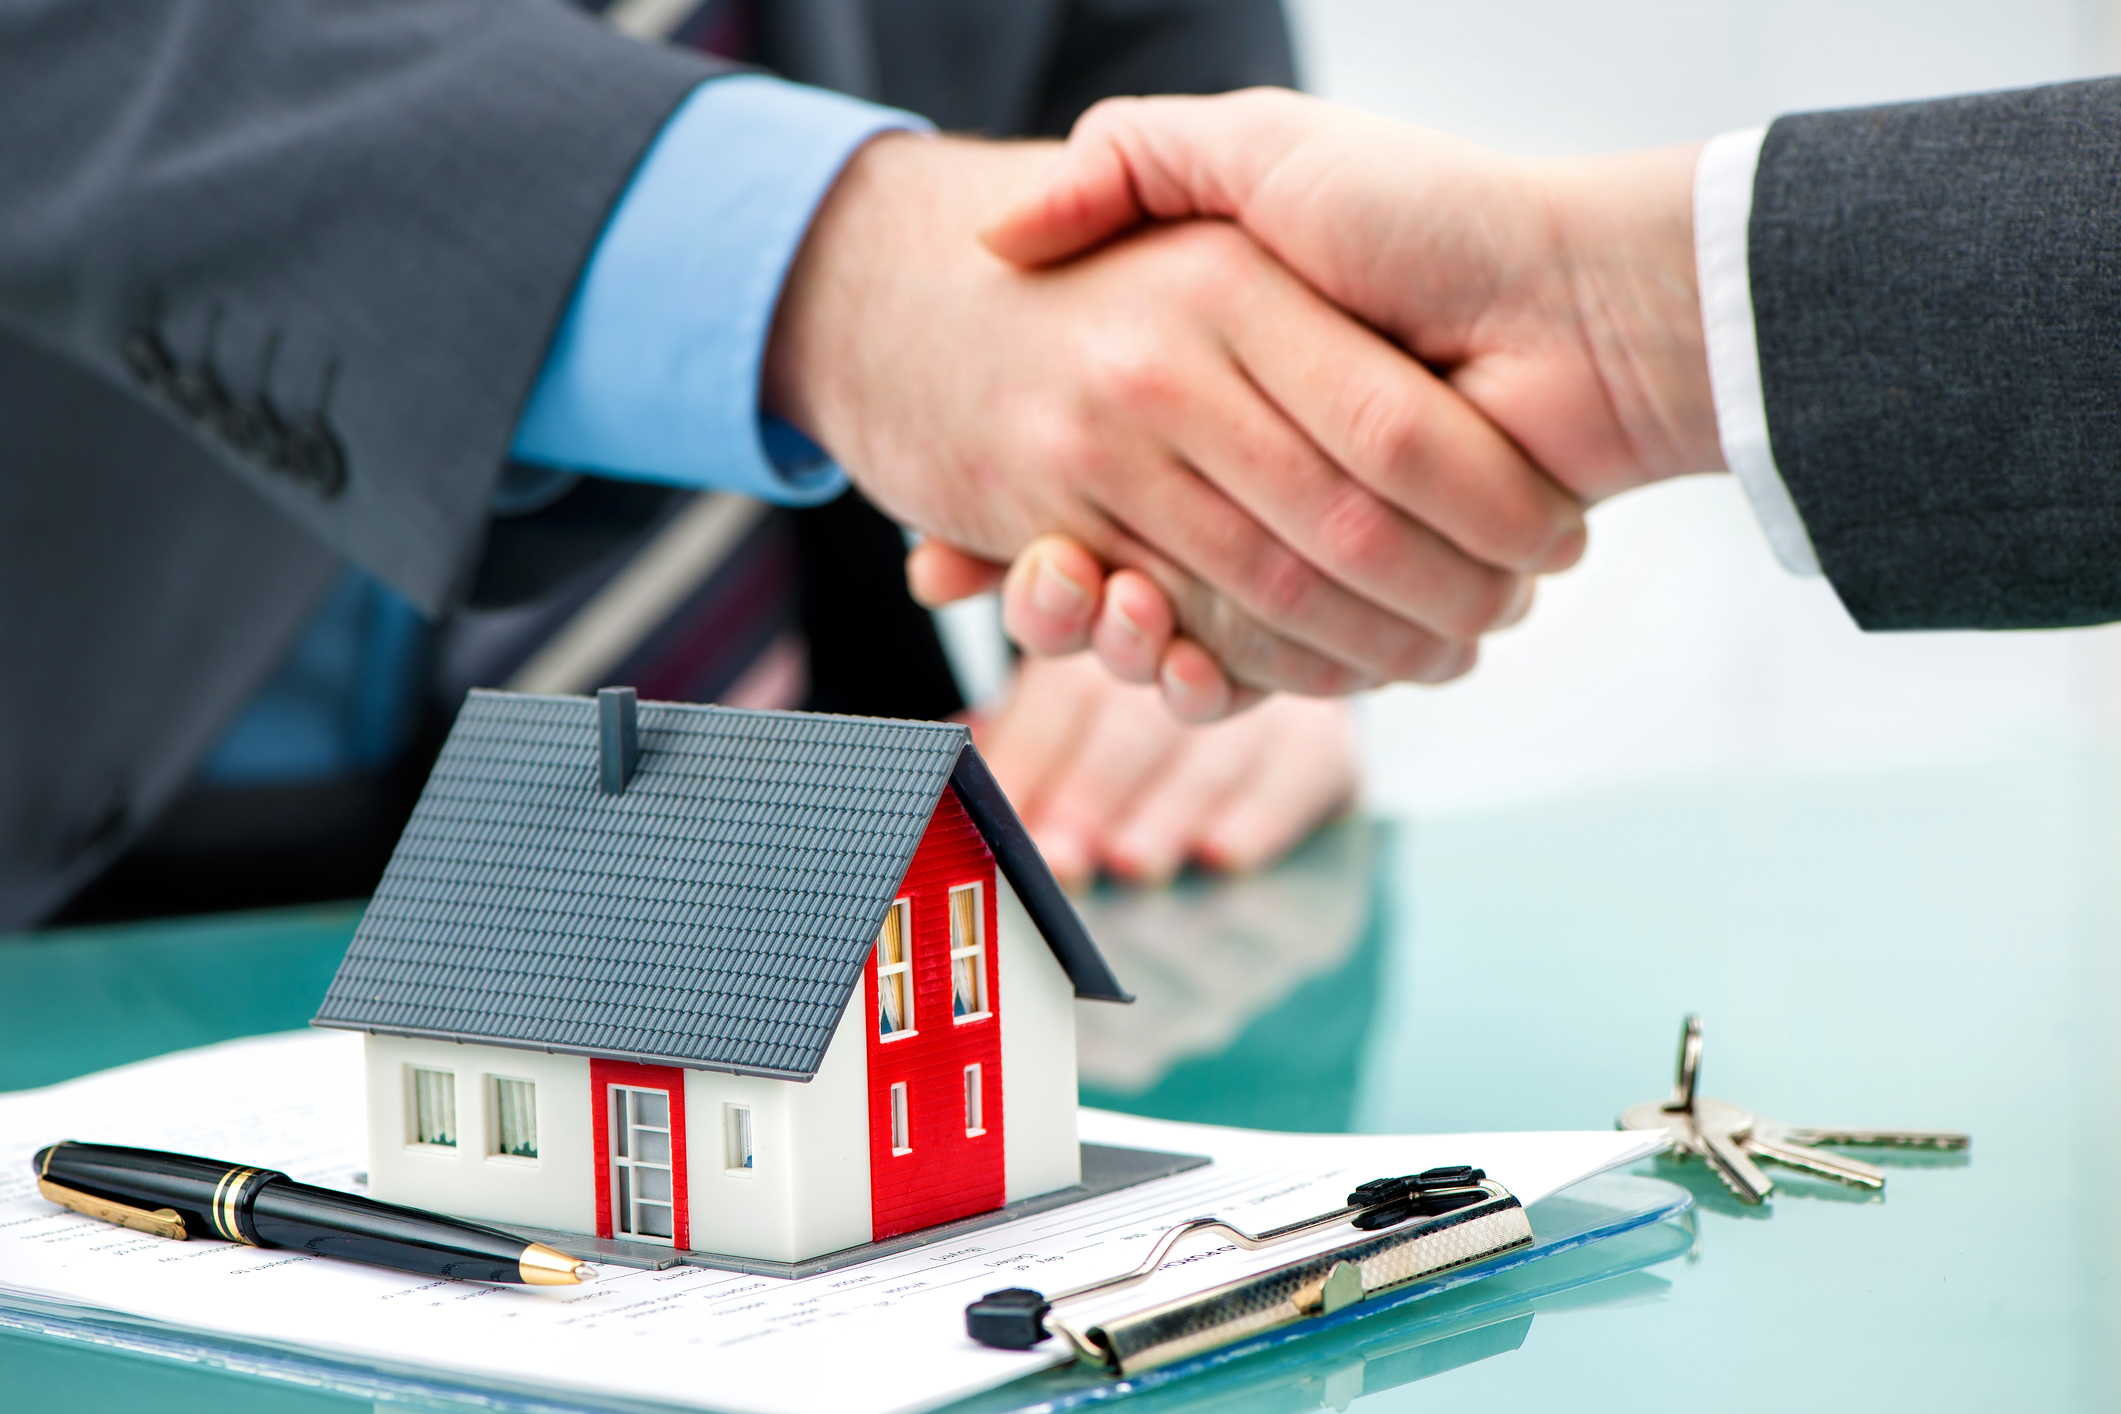 How to become a successful mortgage broker